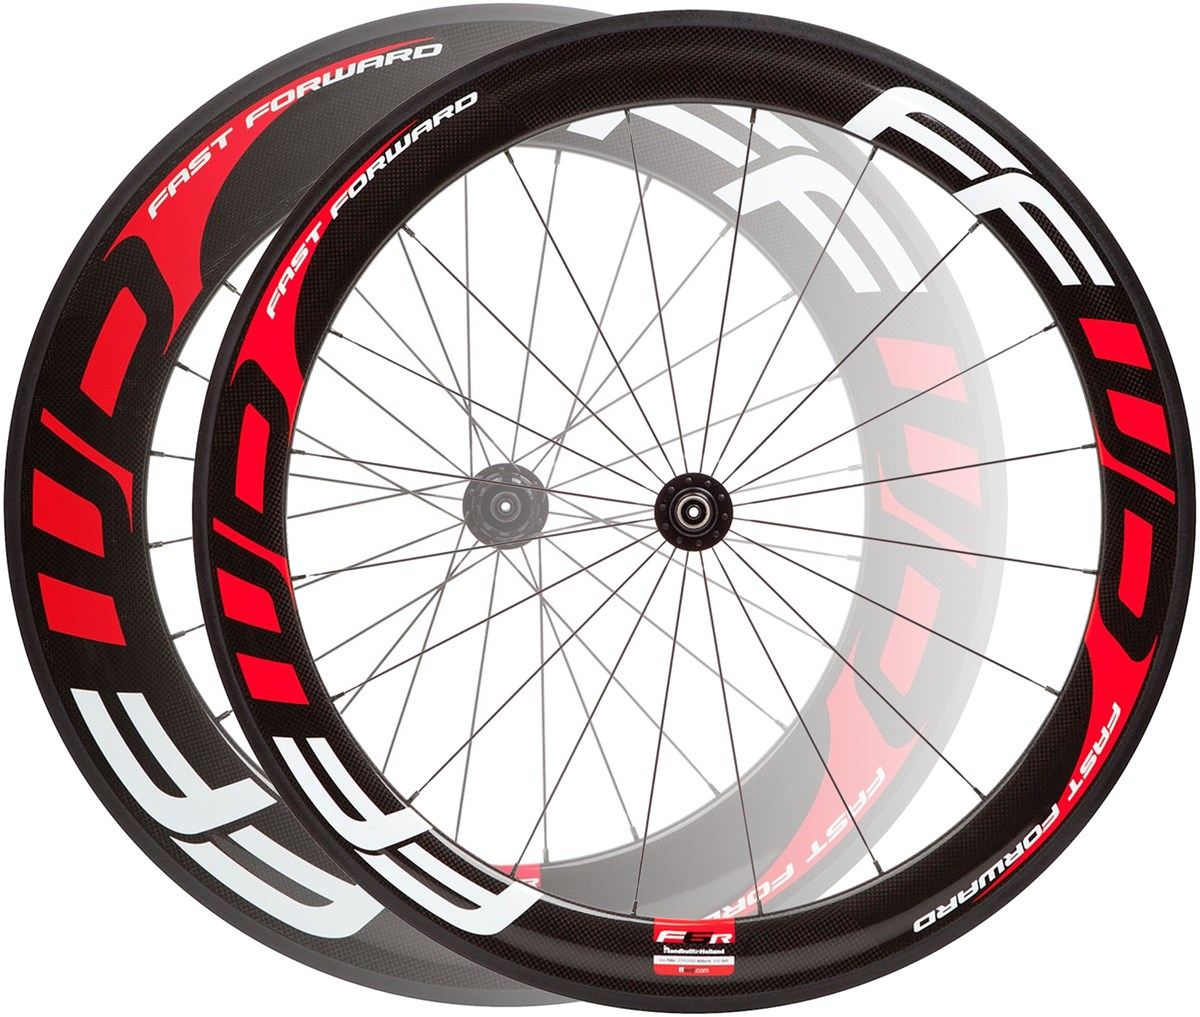 Fast Forward F6R/F9R Combo Full Carbon Clincher Wheelset